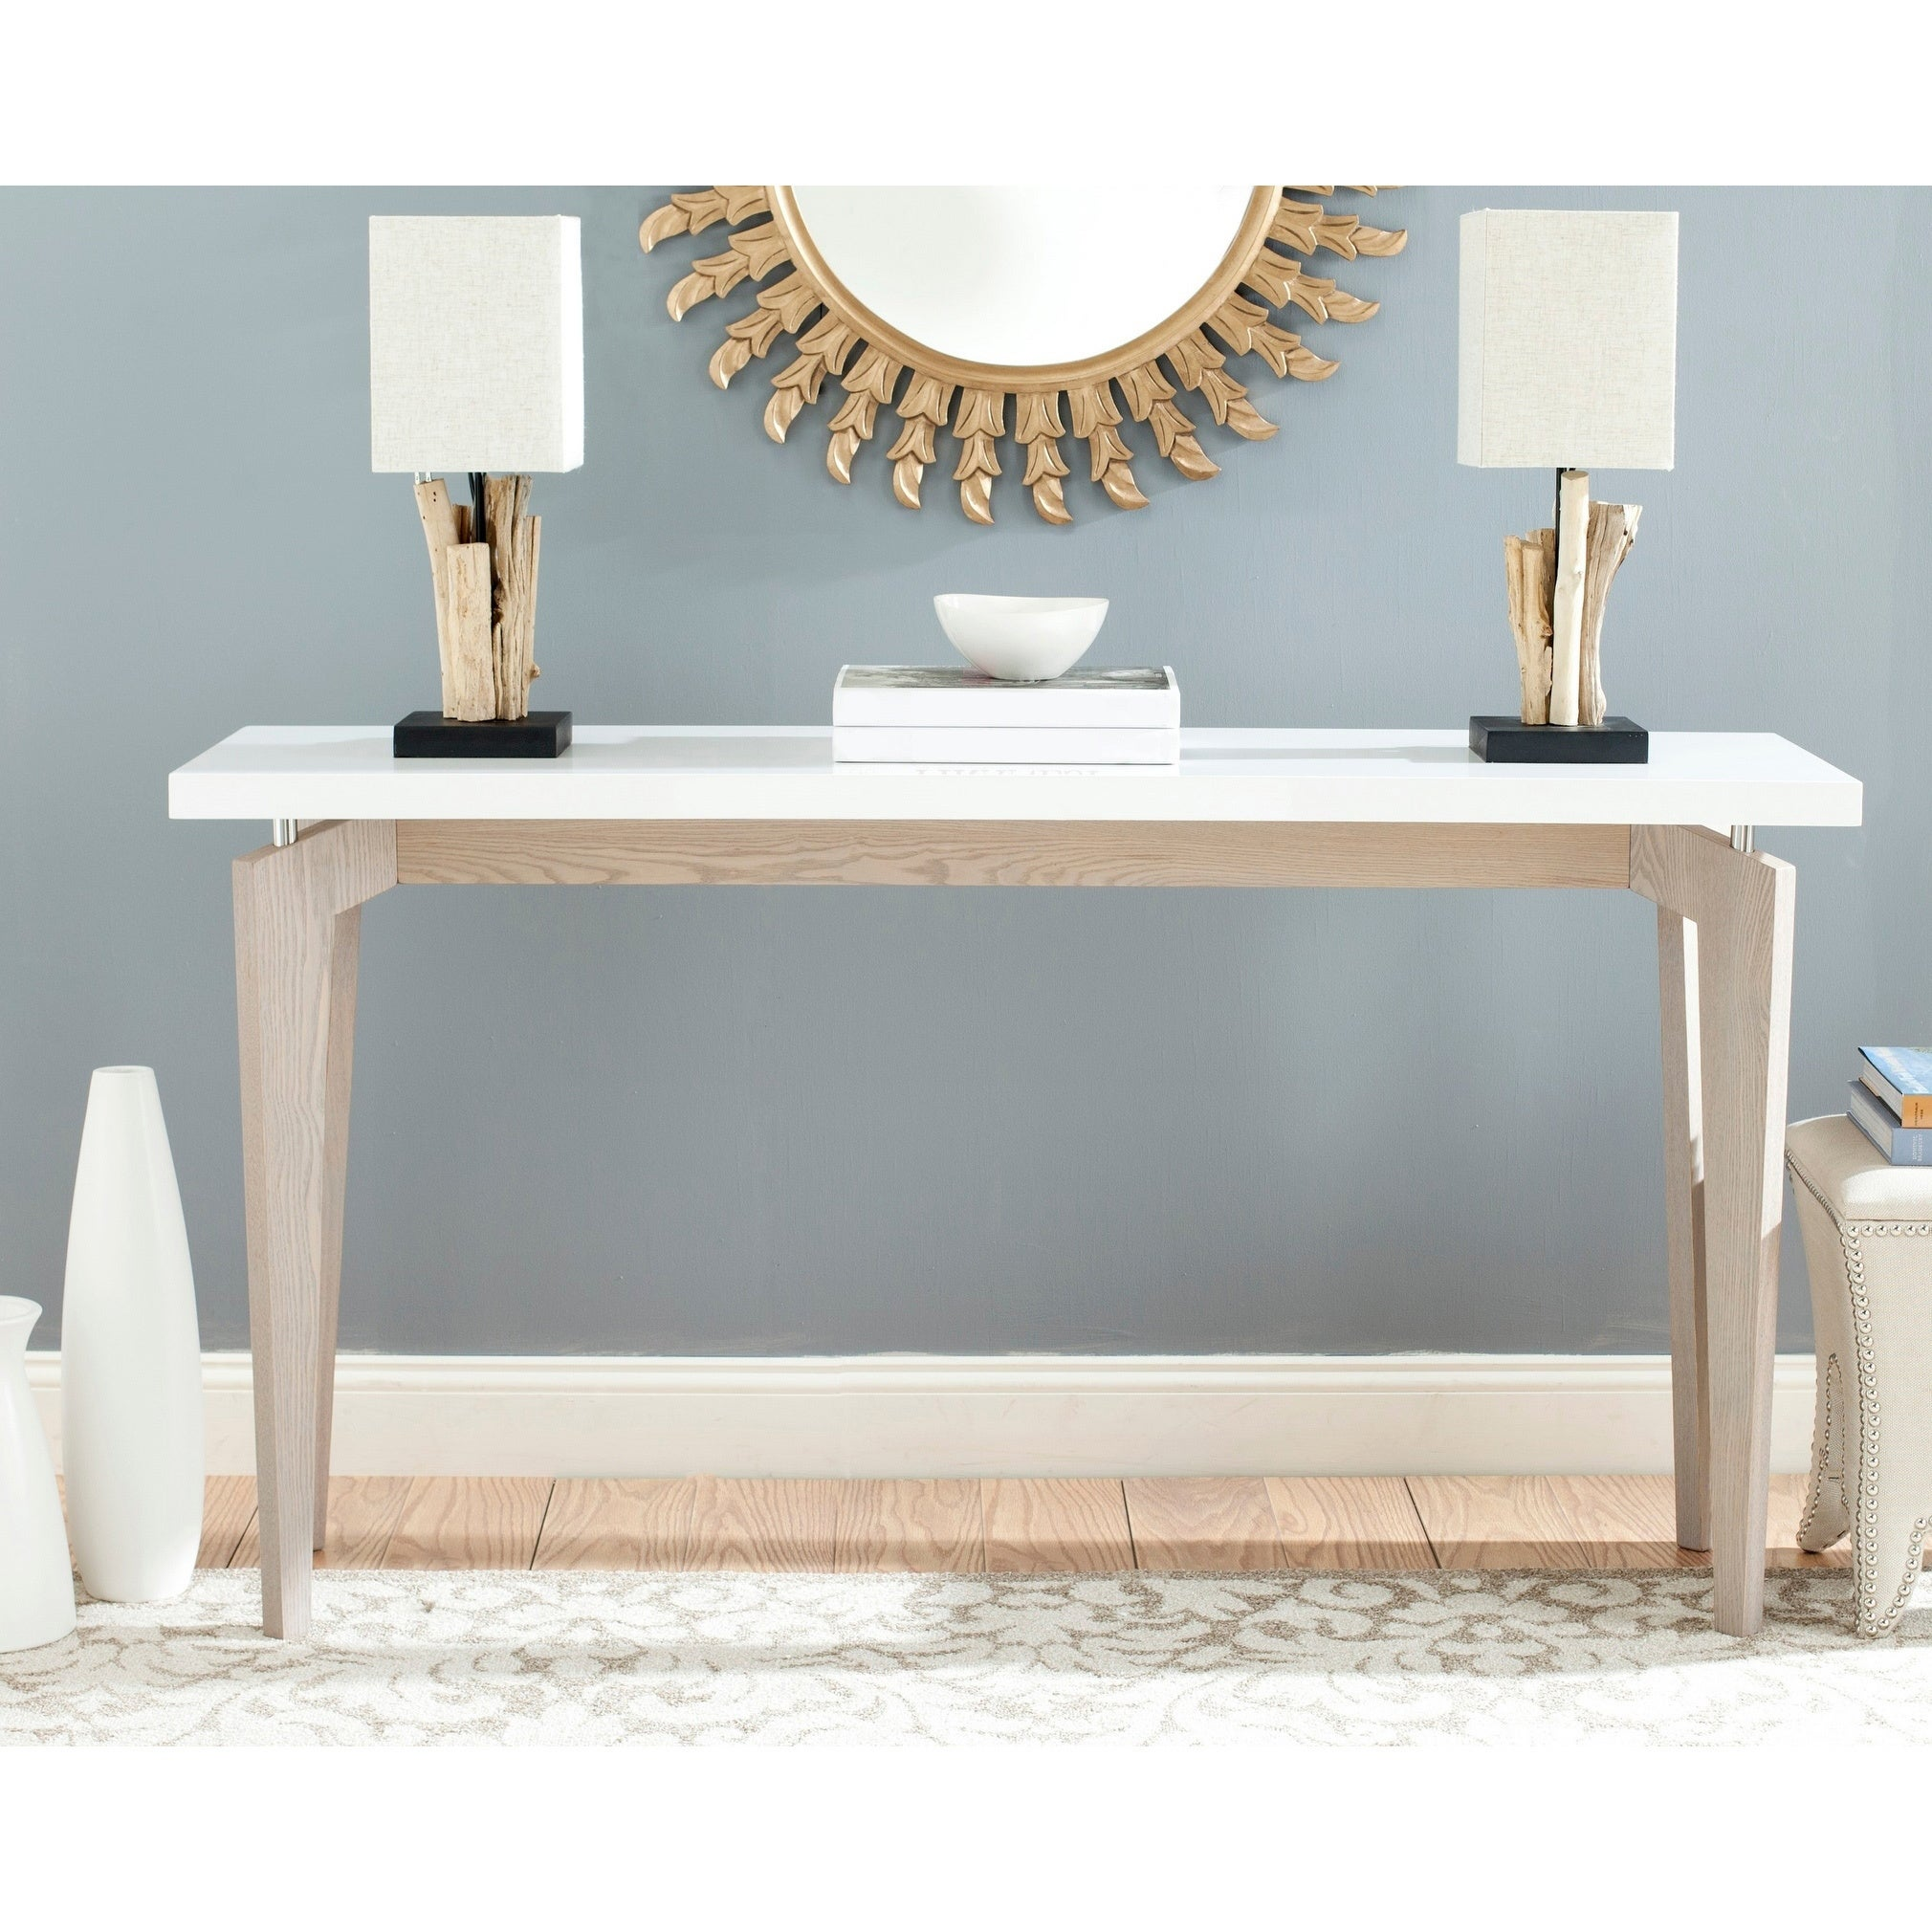 Safavieh Josef White Grey Lacquer Console Table 59 X 17 6 X 31 5 On Sale Overstock 11408330